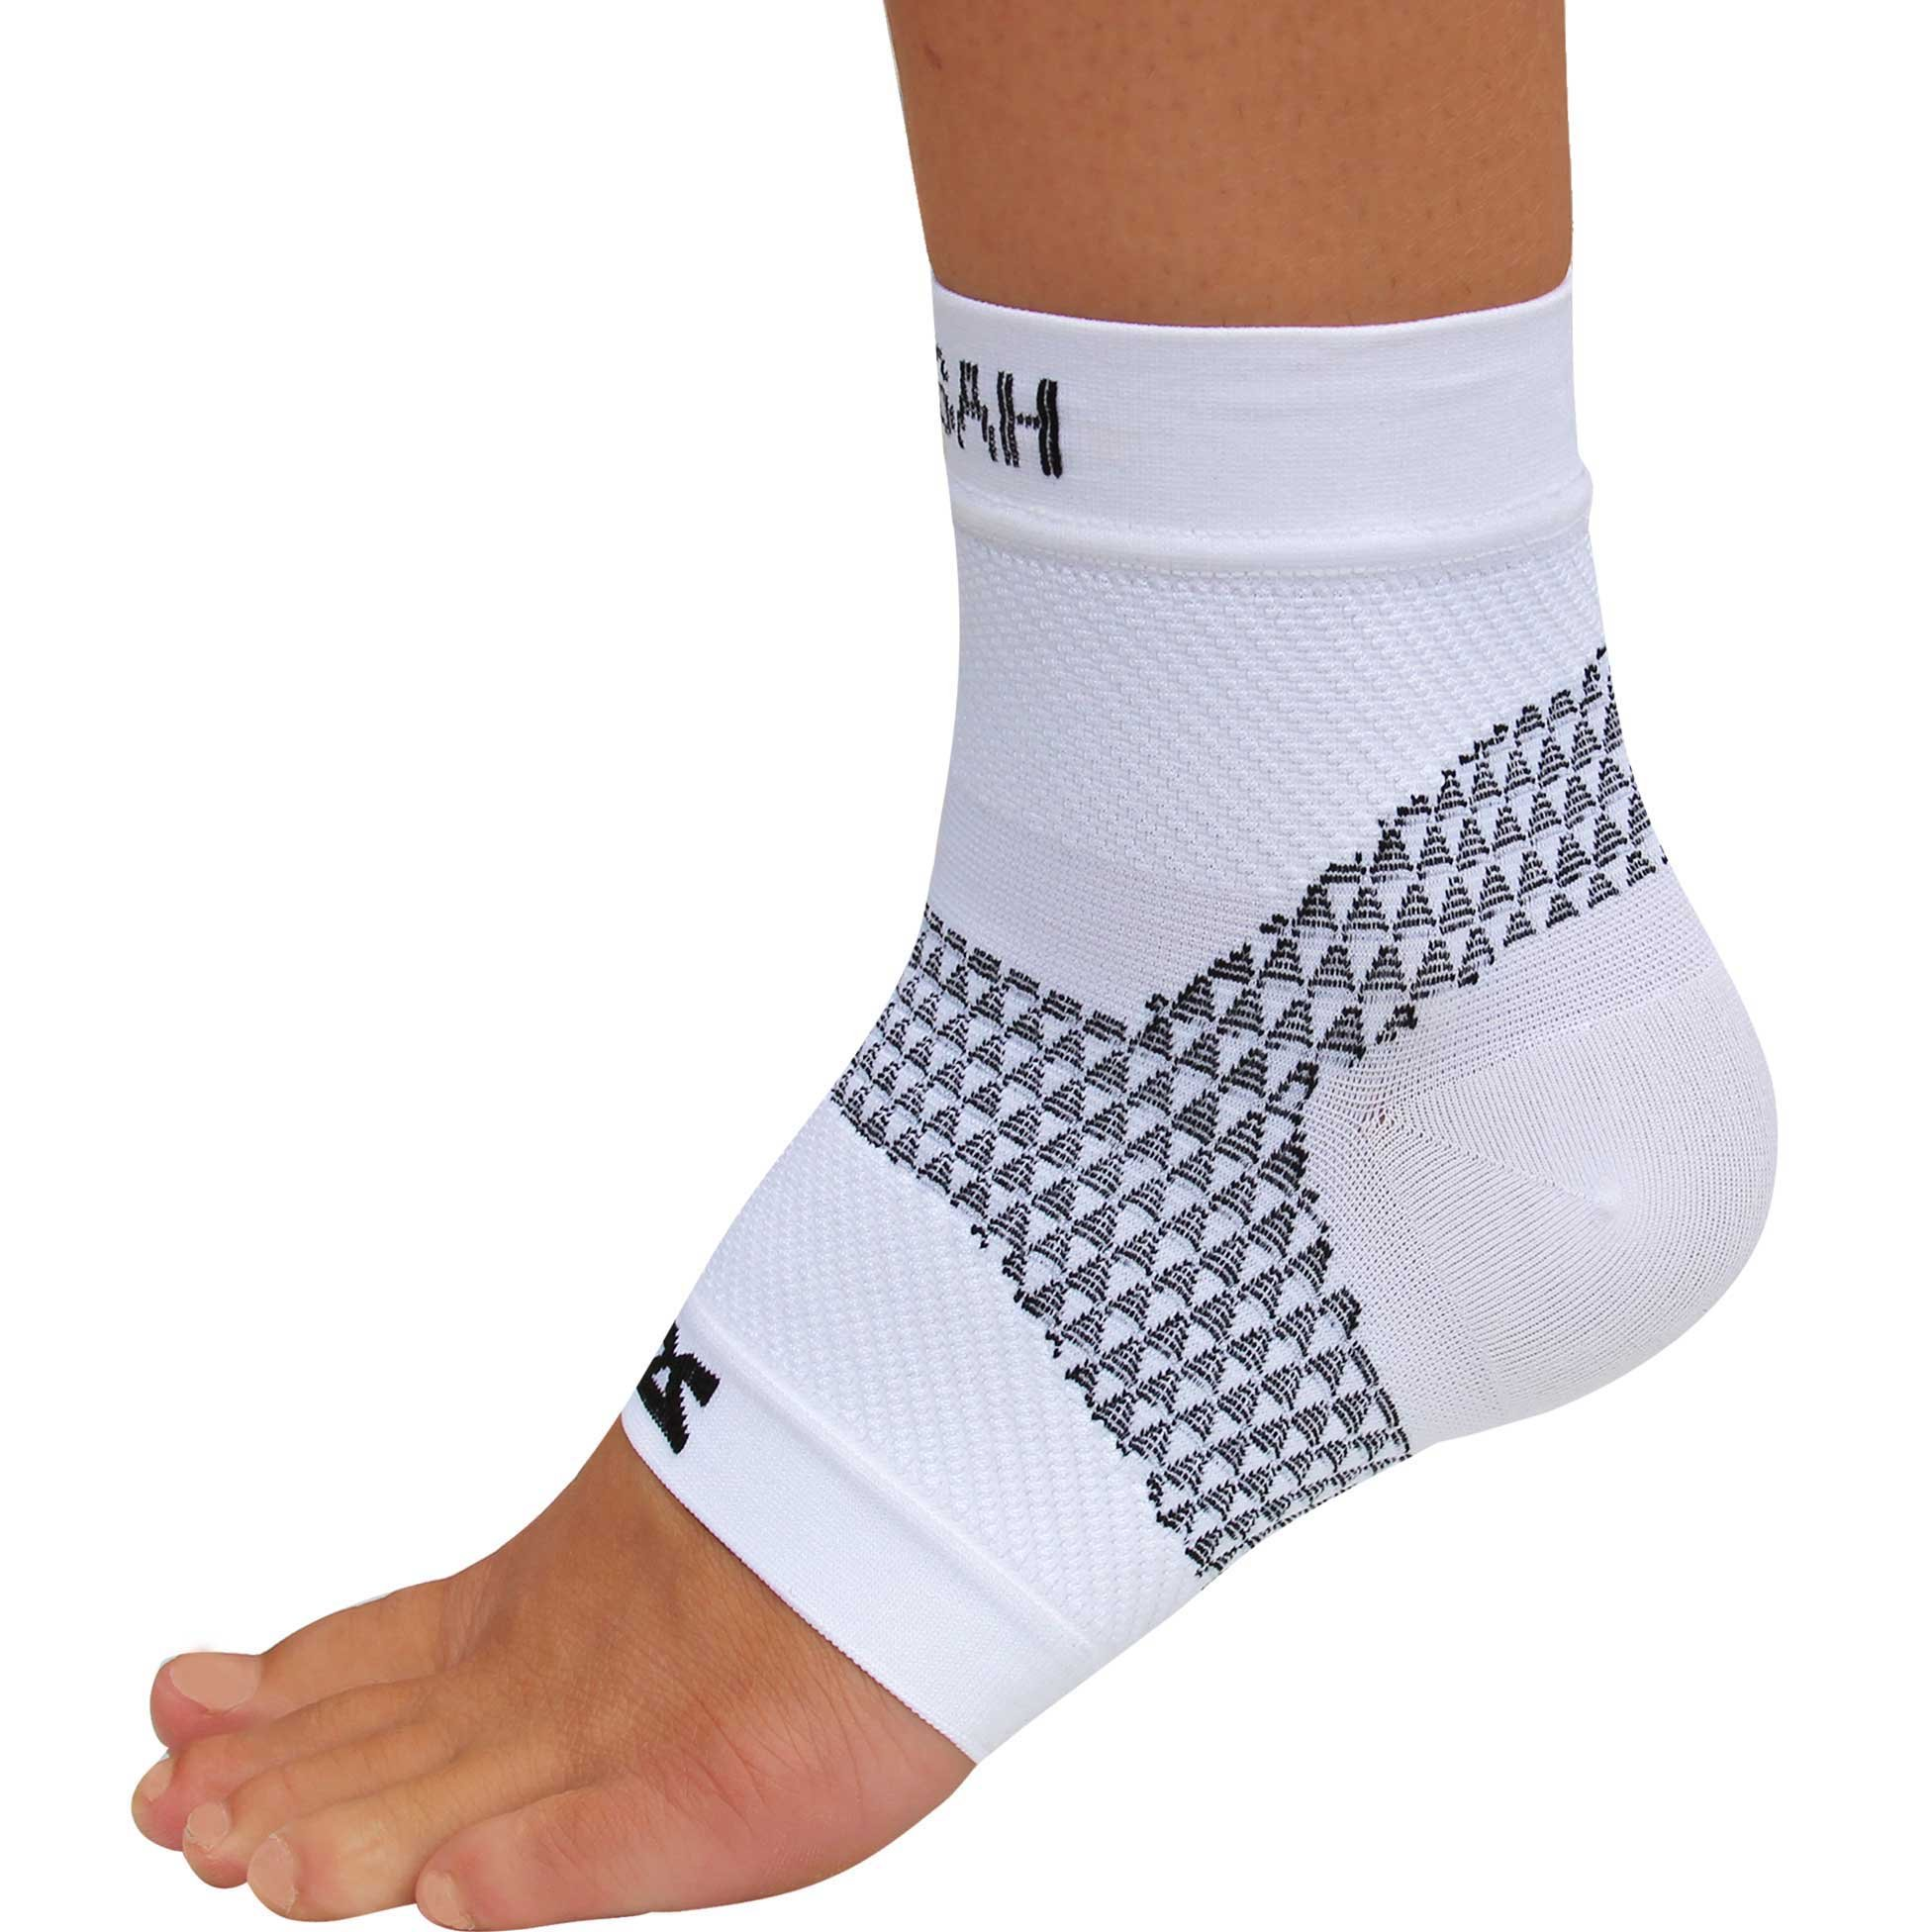 Zensah PF Compression Sleeve (single) - Plantar Fasciitis Sleeve, Relieve Heel Pain, Arch Support, Reduce Swelling - Foot Sleeve, Plantar Fasciitis Sock,S,White